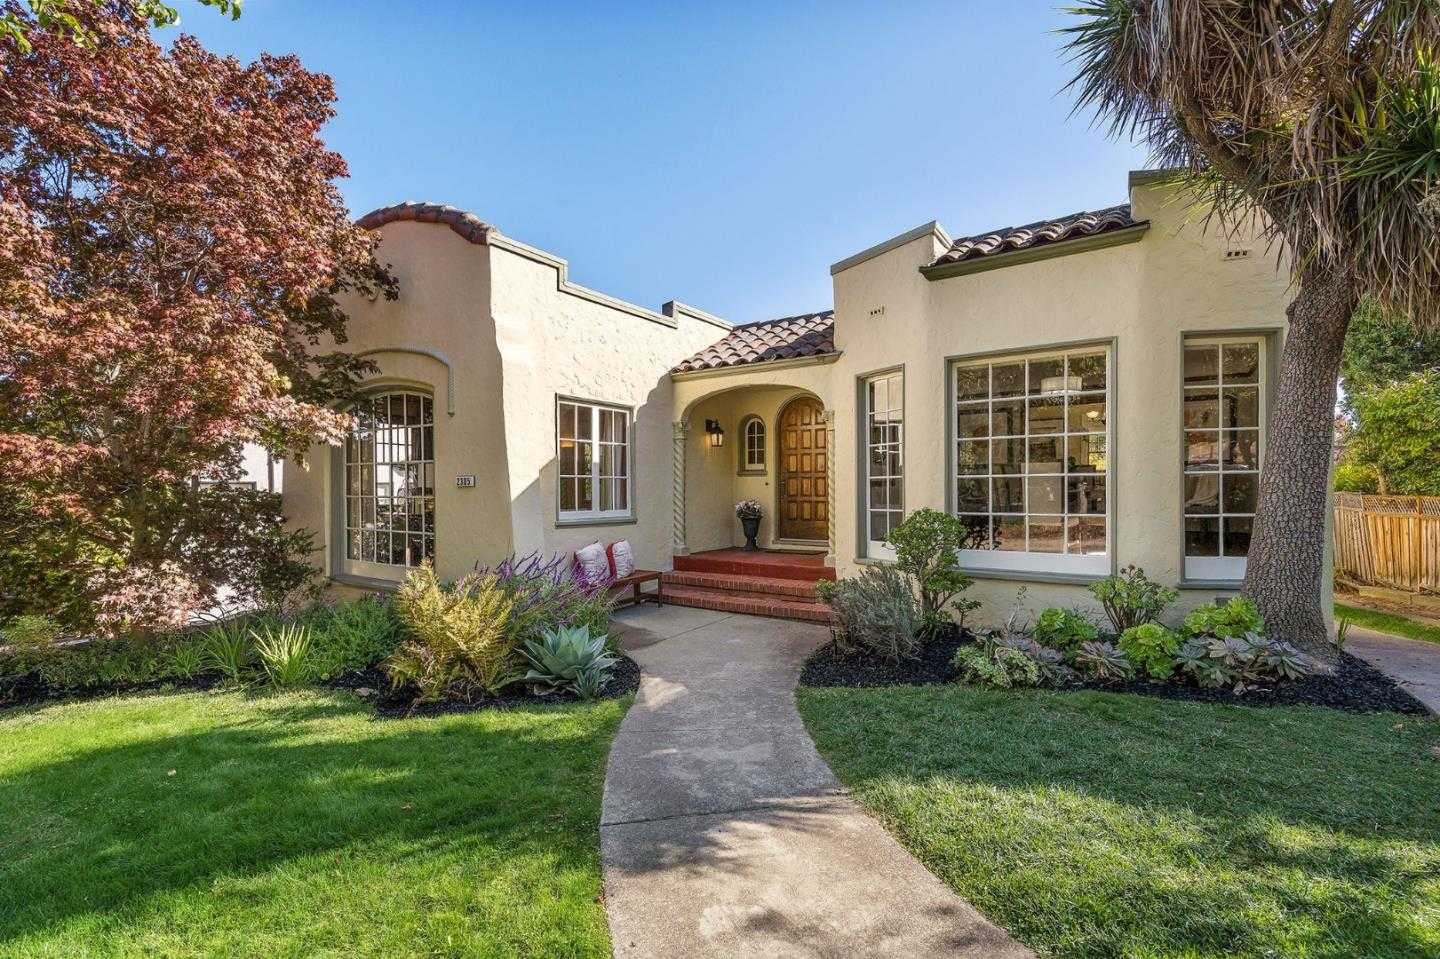 $1,998,800 - 3Br/2Ba -  for Sale in Burlingame